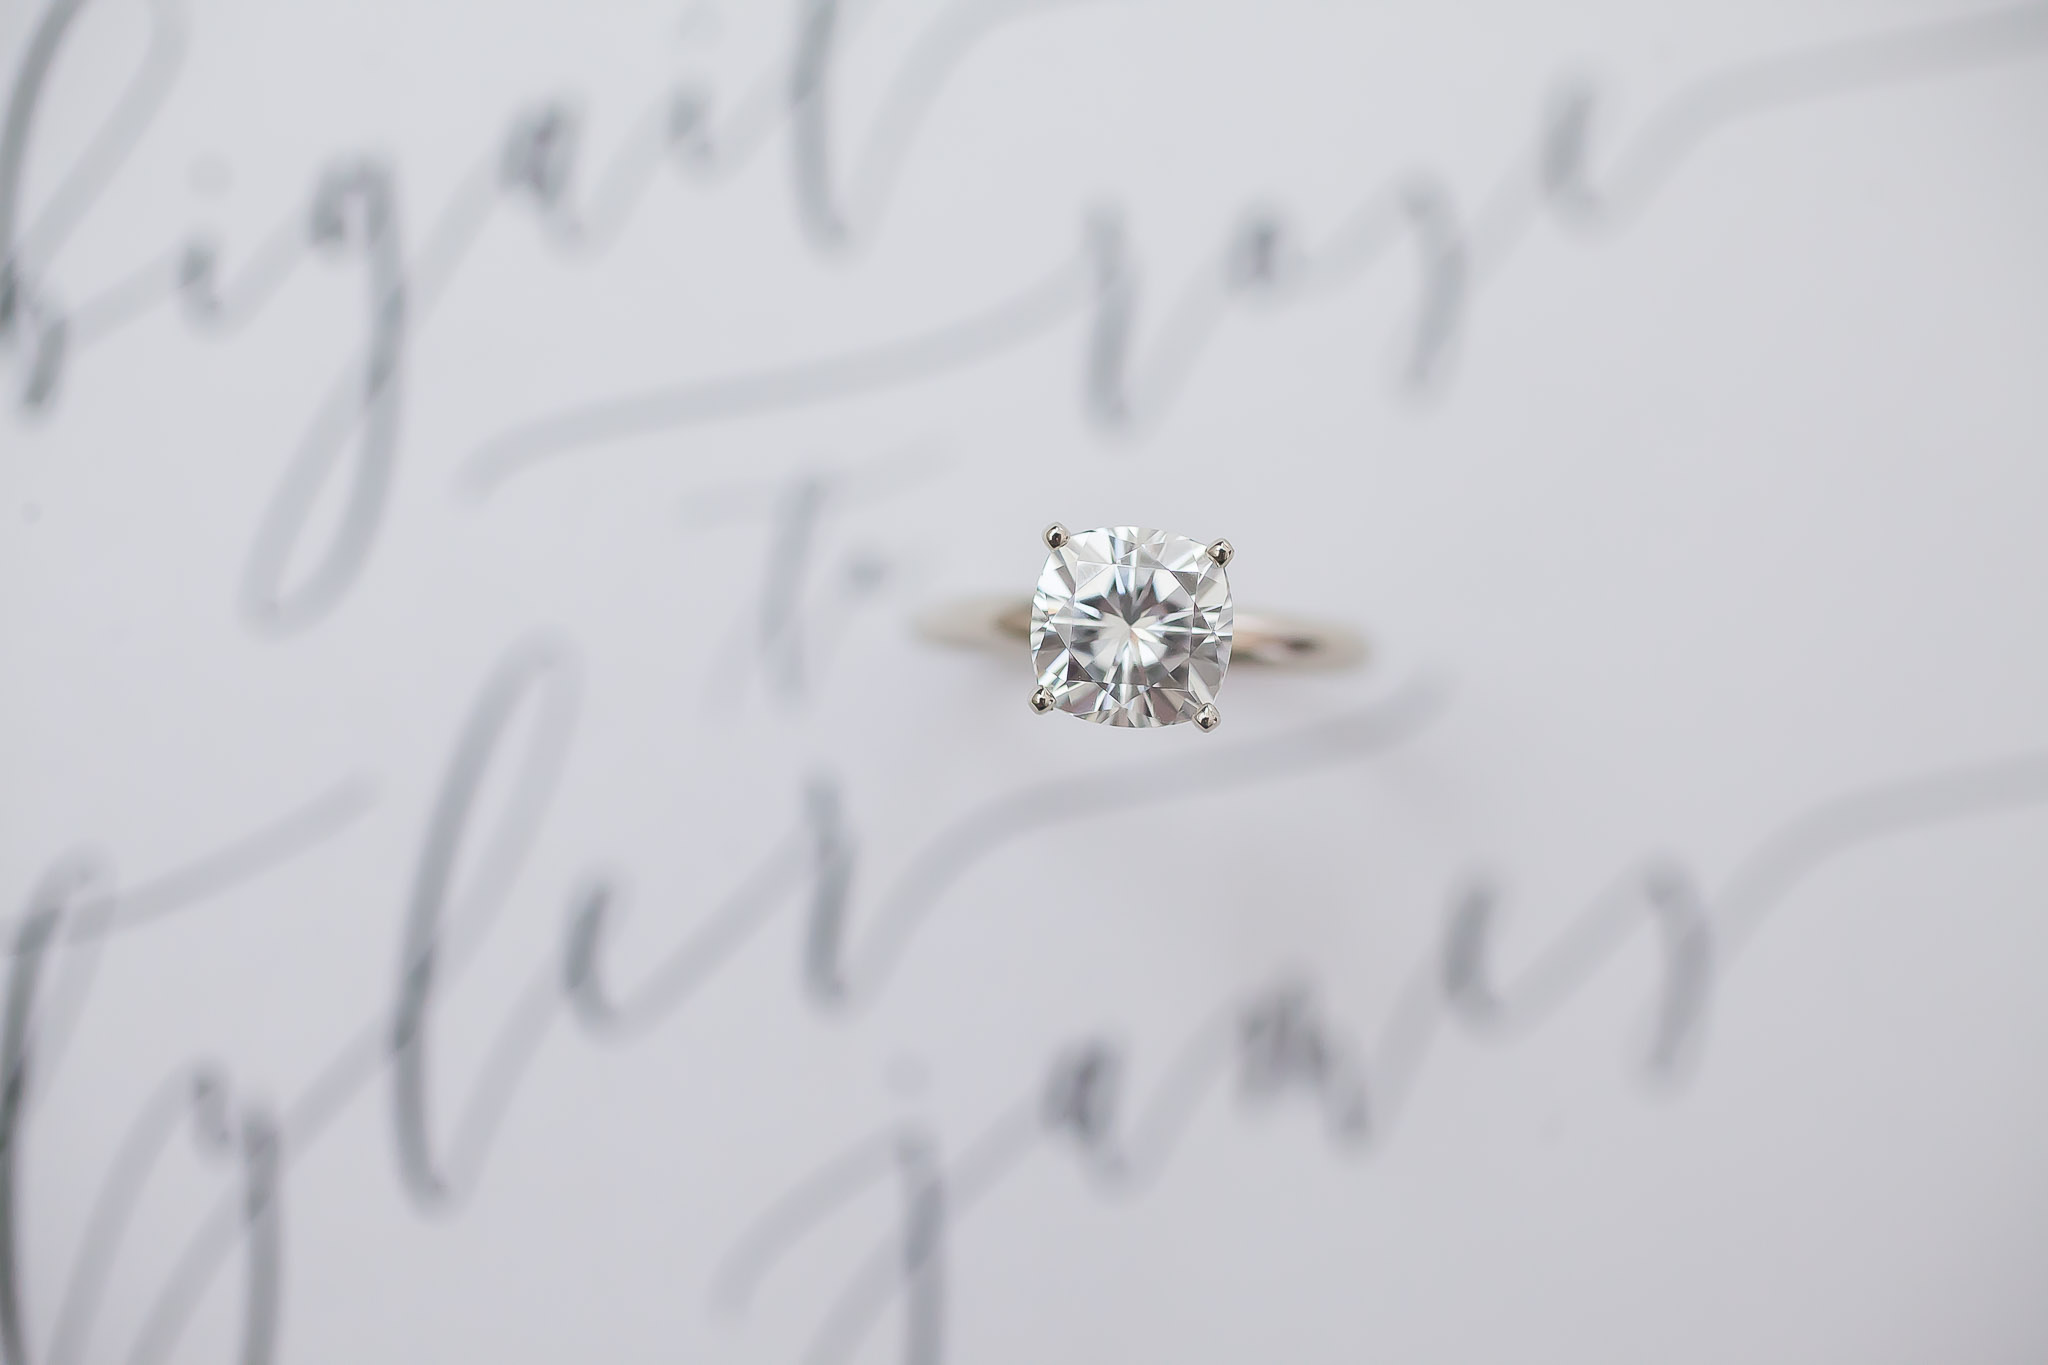 Fire + Brilliance Engagement Ring - St. Joseph Michigan Wedding Photographer - Toni Jay Photography